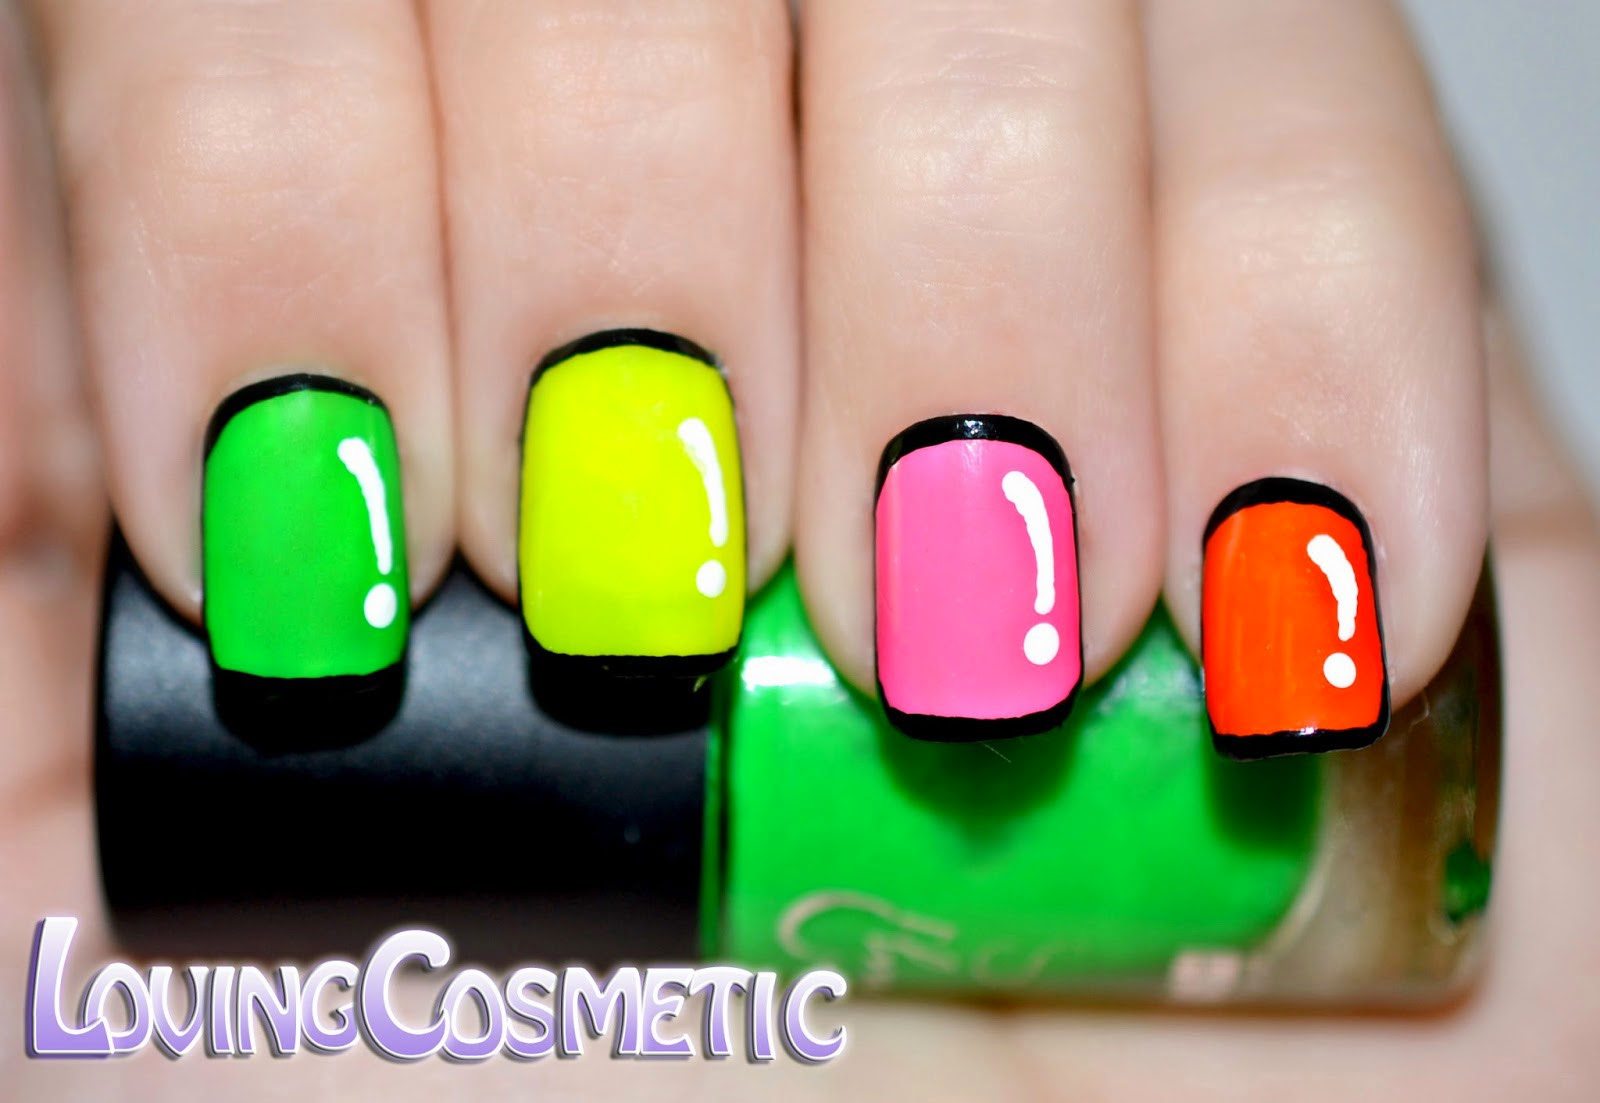 Nail art cartoon Comic Nails neon colour diseño uñas ilovemynails carobels